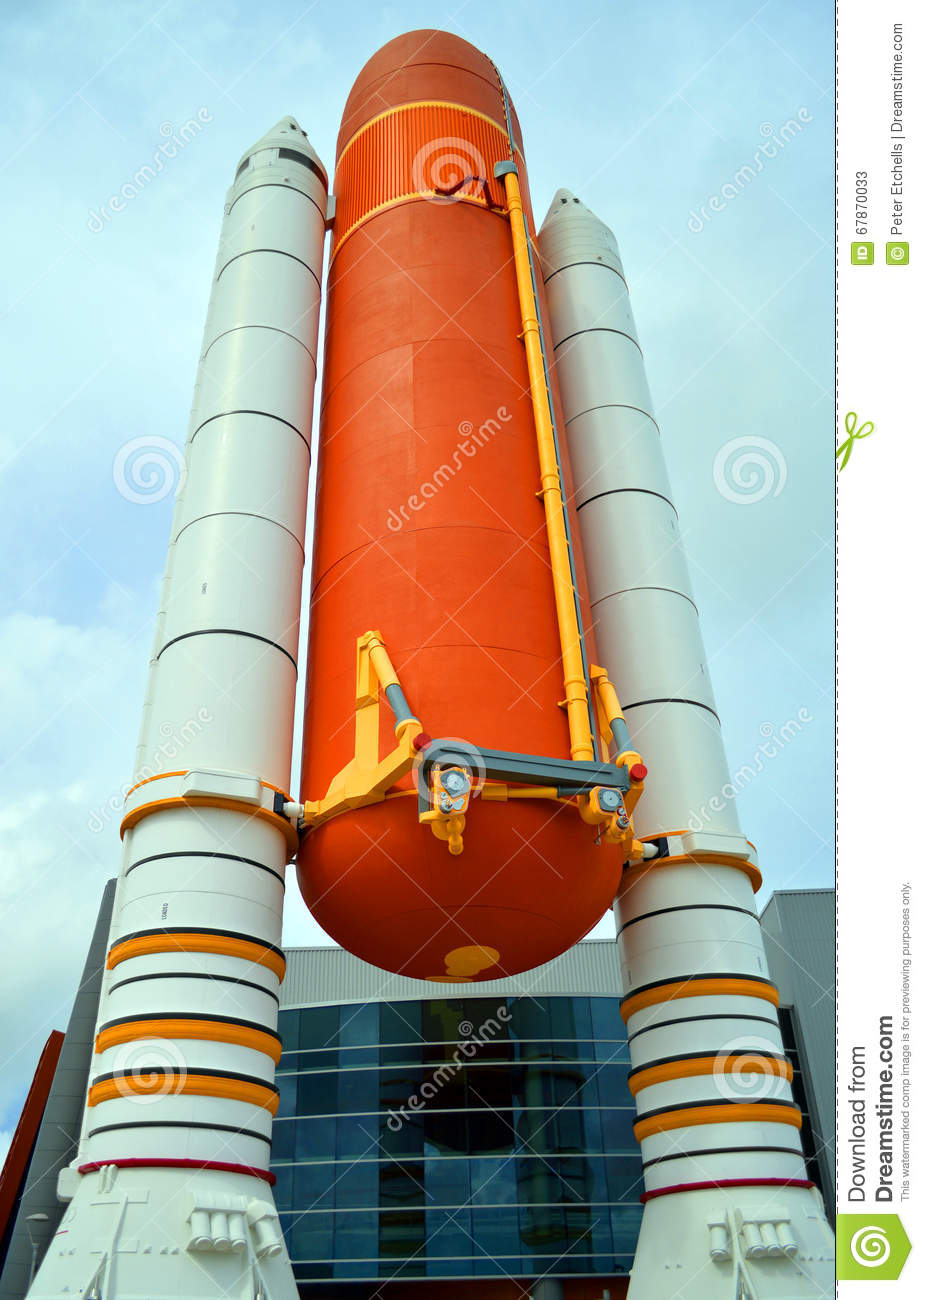 Space Shuttle Solid Rocket Boosters And External Tank On Display.